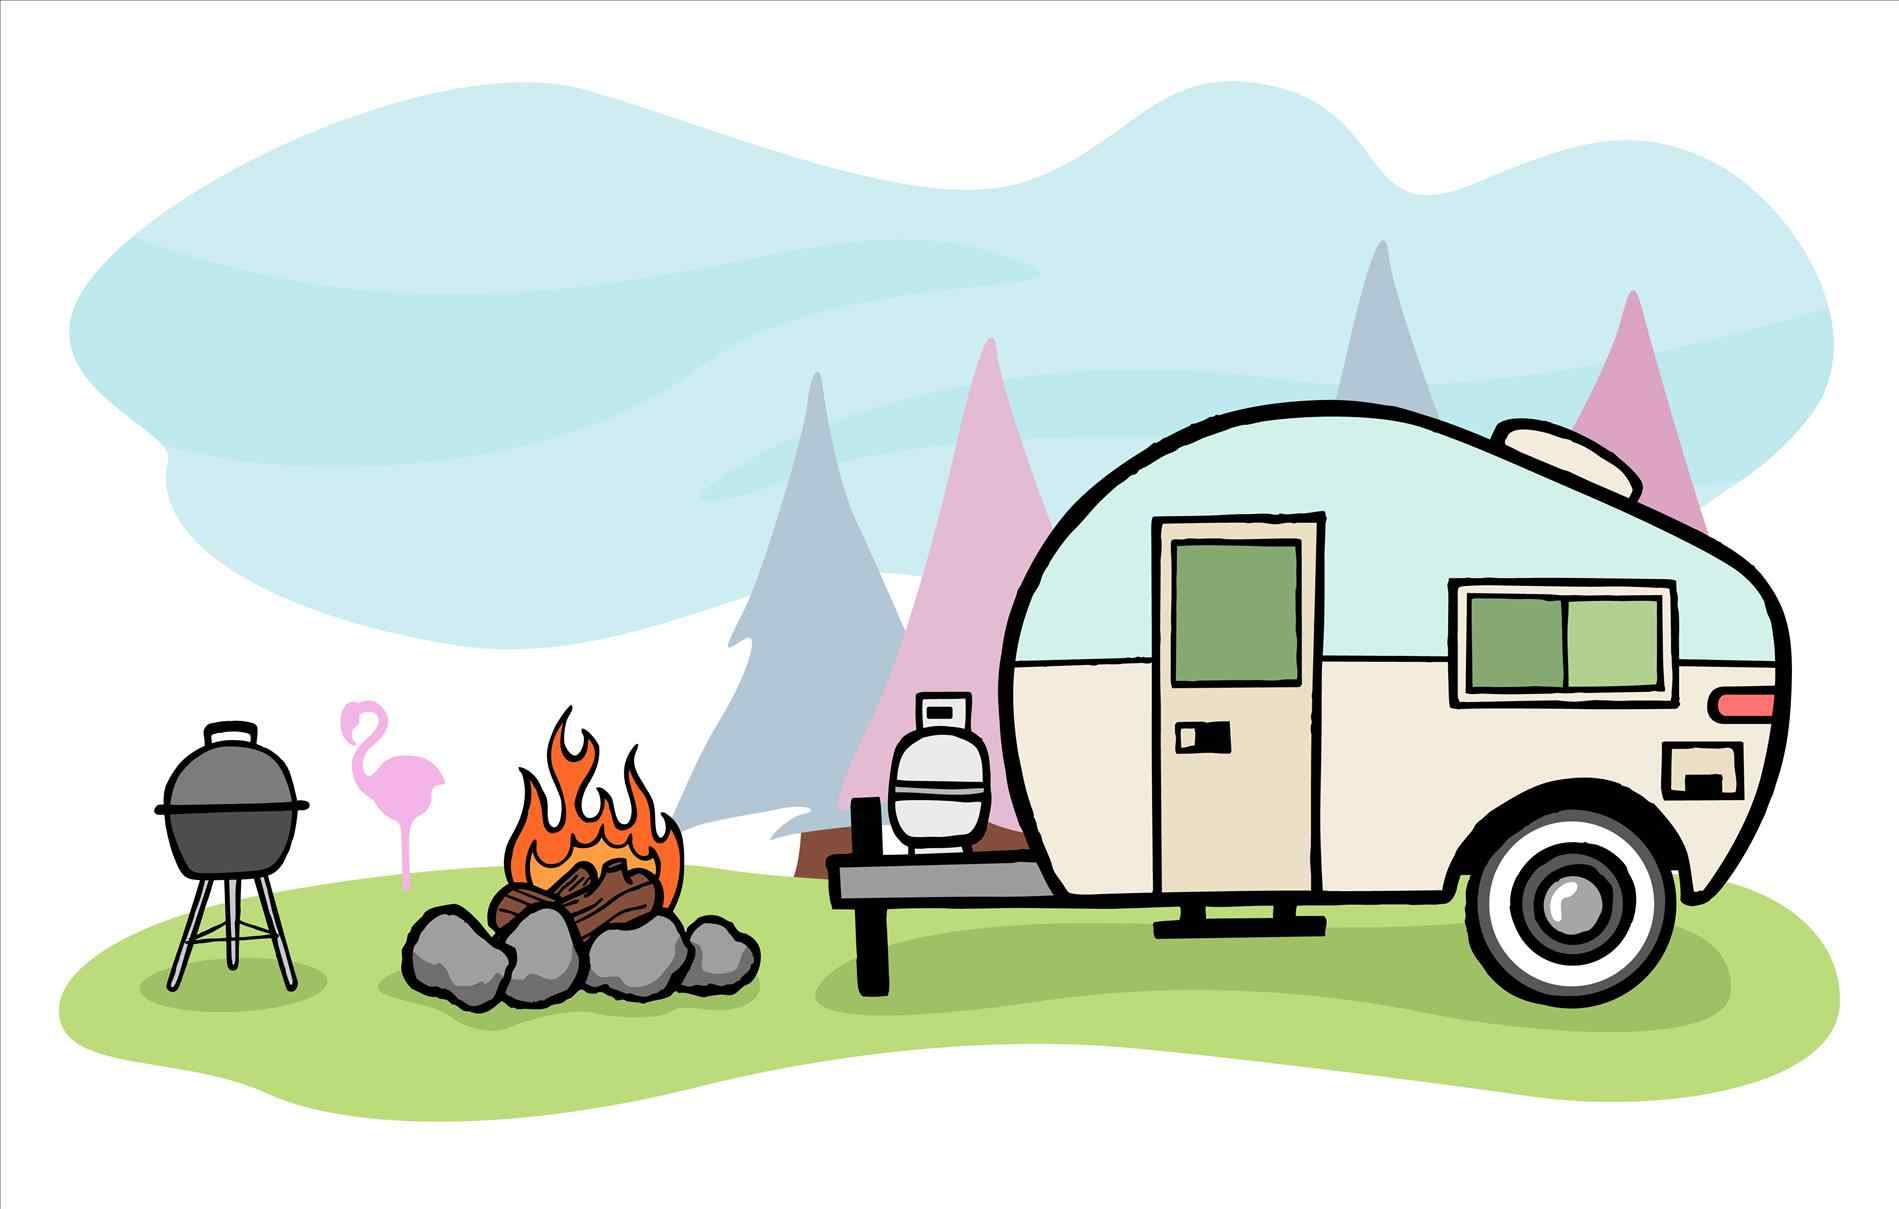 Camping pictures clipart clipart free Campsite Clipart   Free download best Campsite Clipart on ClipArtMag.com clipart free